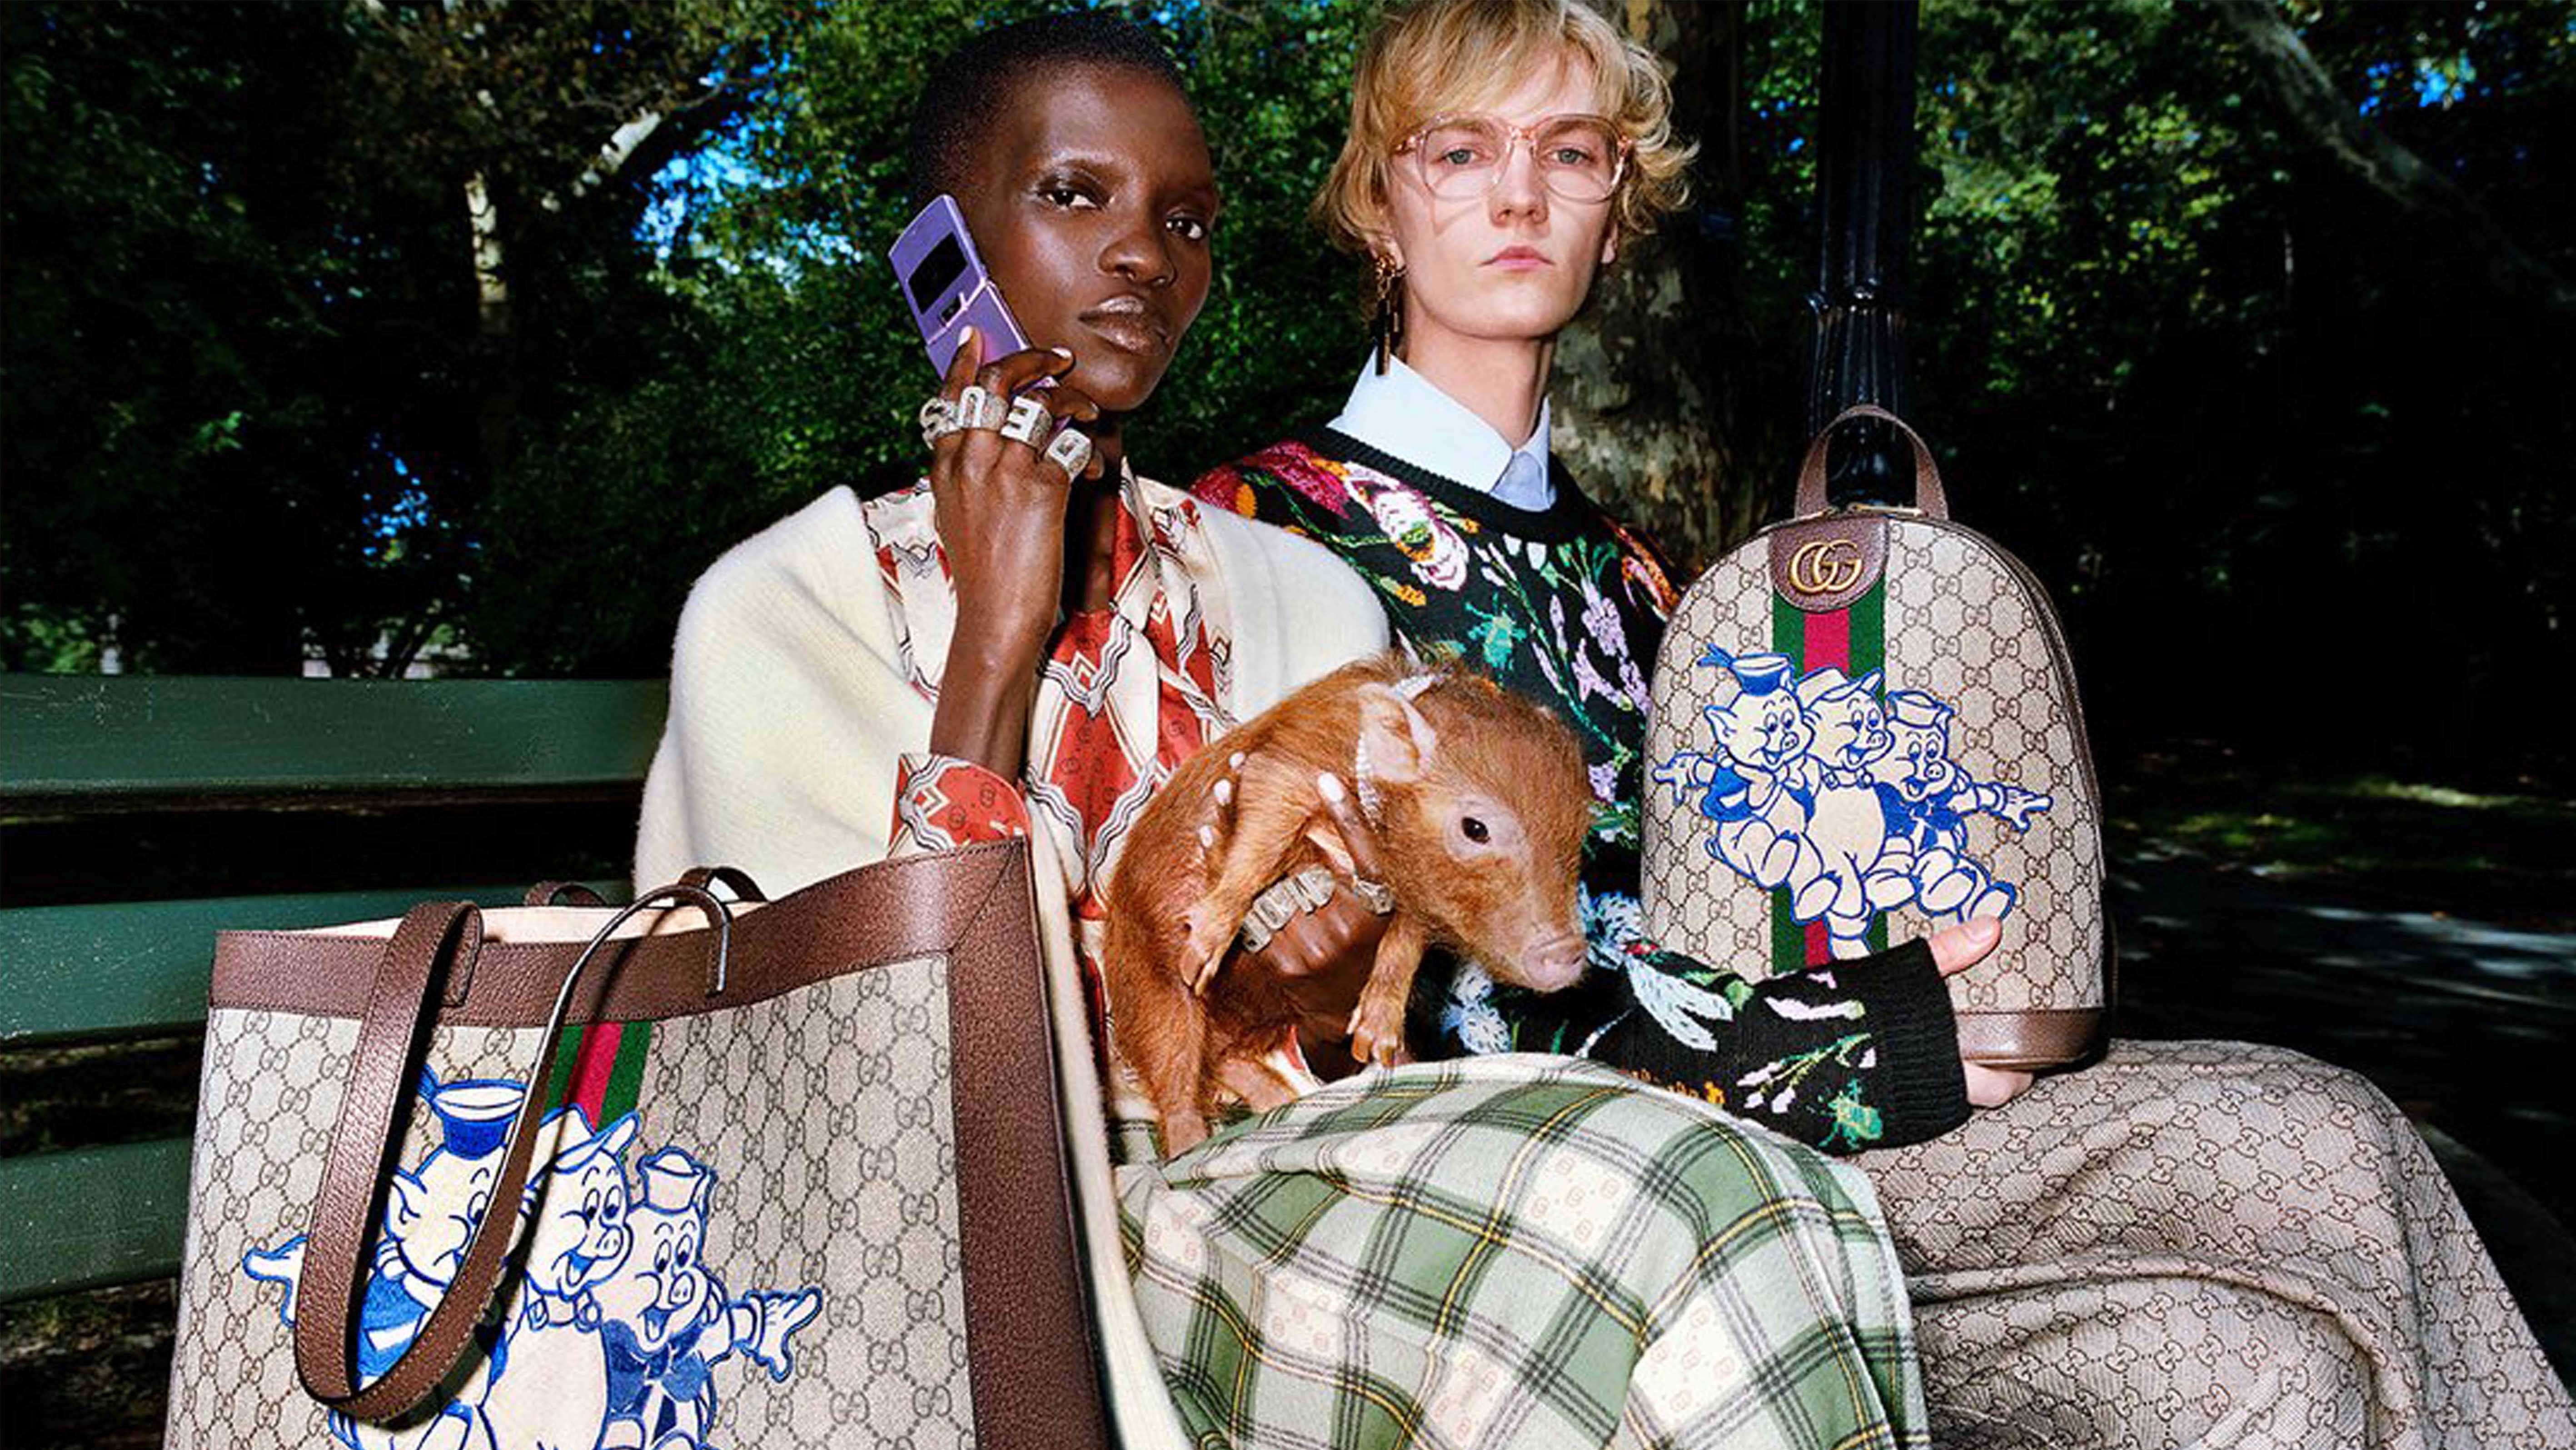 Gucci's Year of the Pig campaign | Source: Gucci